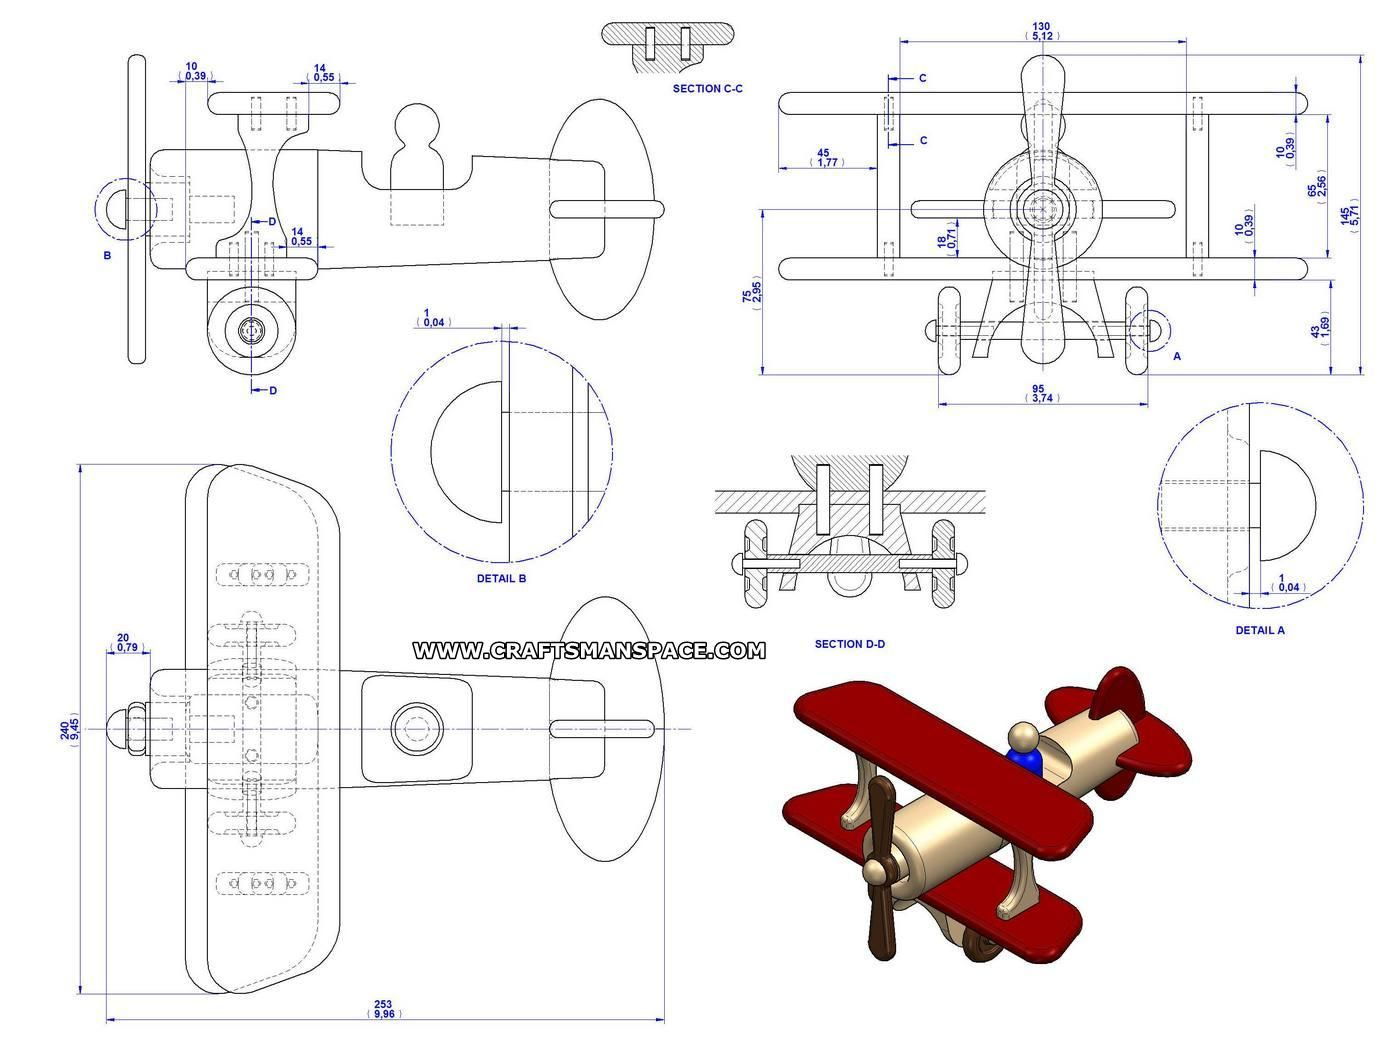 wooden toy plans free pdf | discover woodworking projects